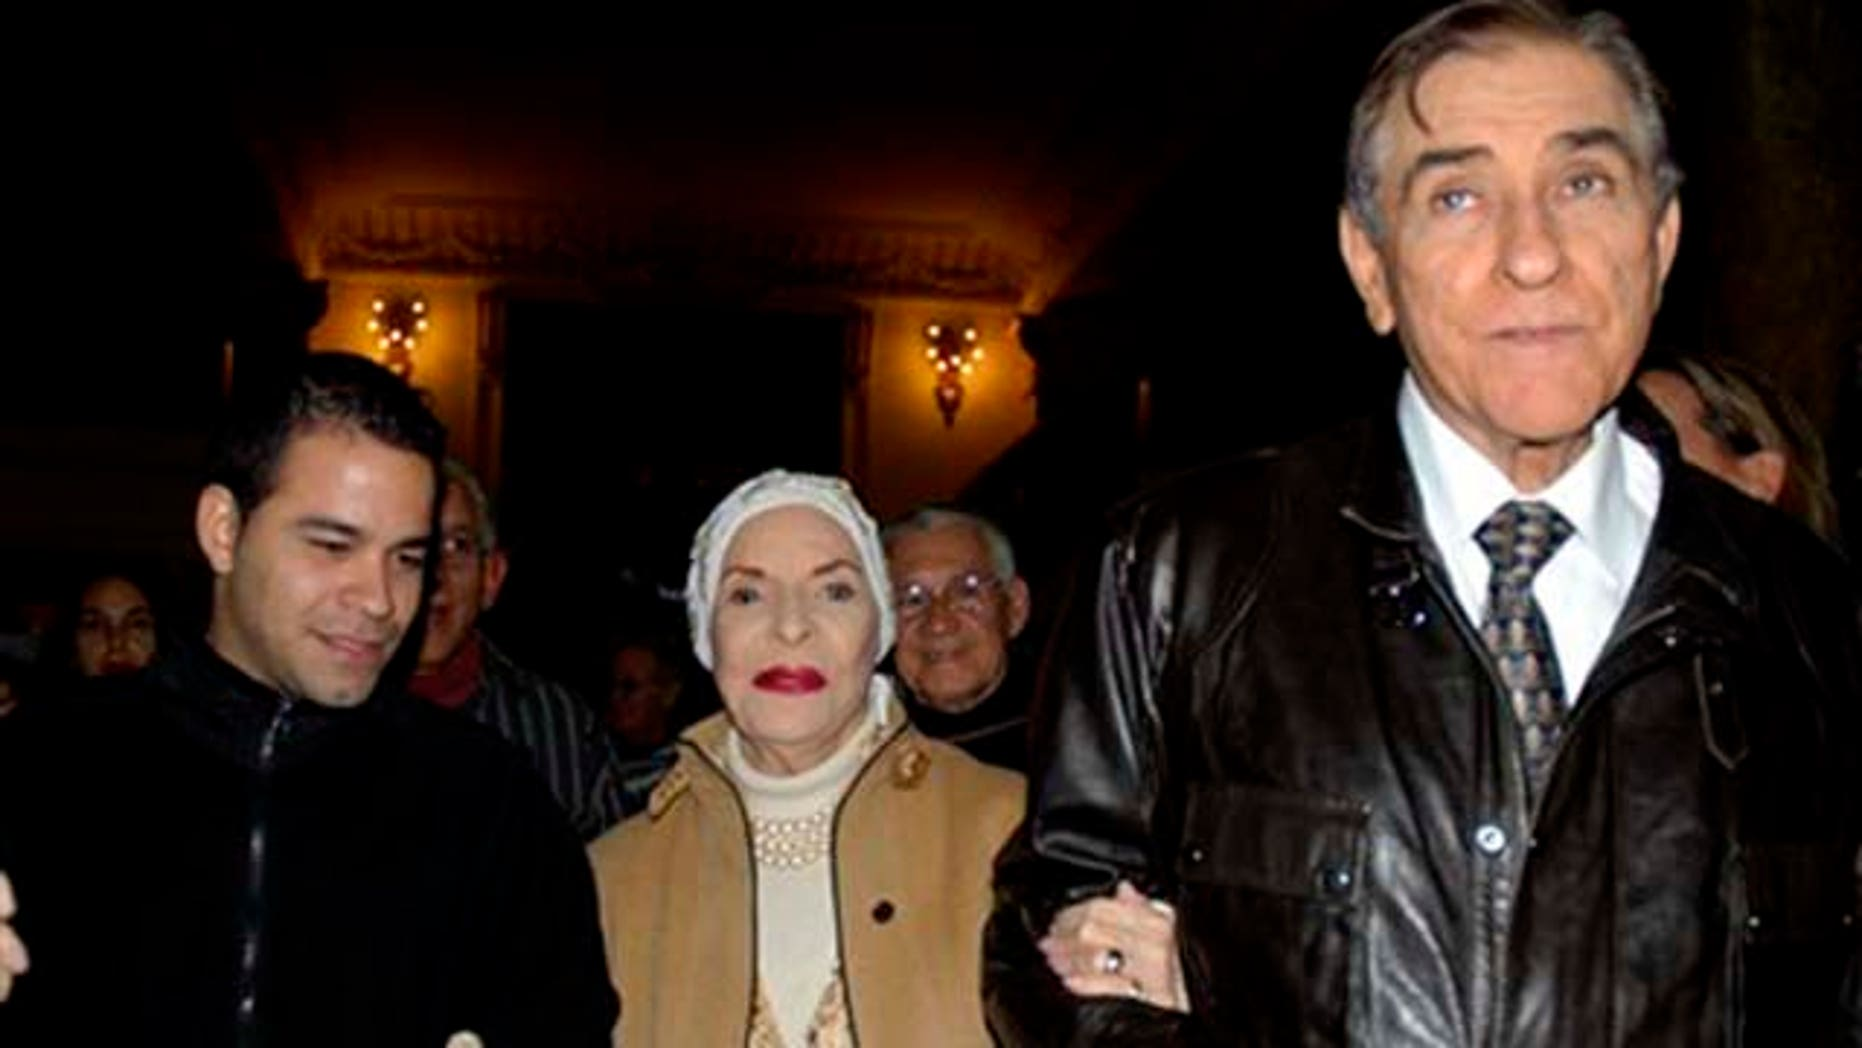 Cuban dance legend Alicia Alonso, center, is accompanied by her husband Fernando Alonso, right, as they leave a gala honoring the prima ballerina on the eve of her 90th birthday, in Havana, Cuba, Monday Dec. 20, 2010. Alonso is considered a living legend of international ballet and a national treasure in her native Cuba.  (AP Photo)